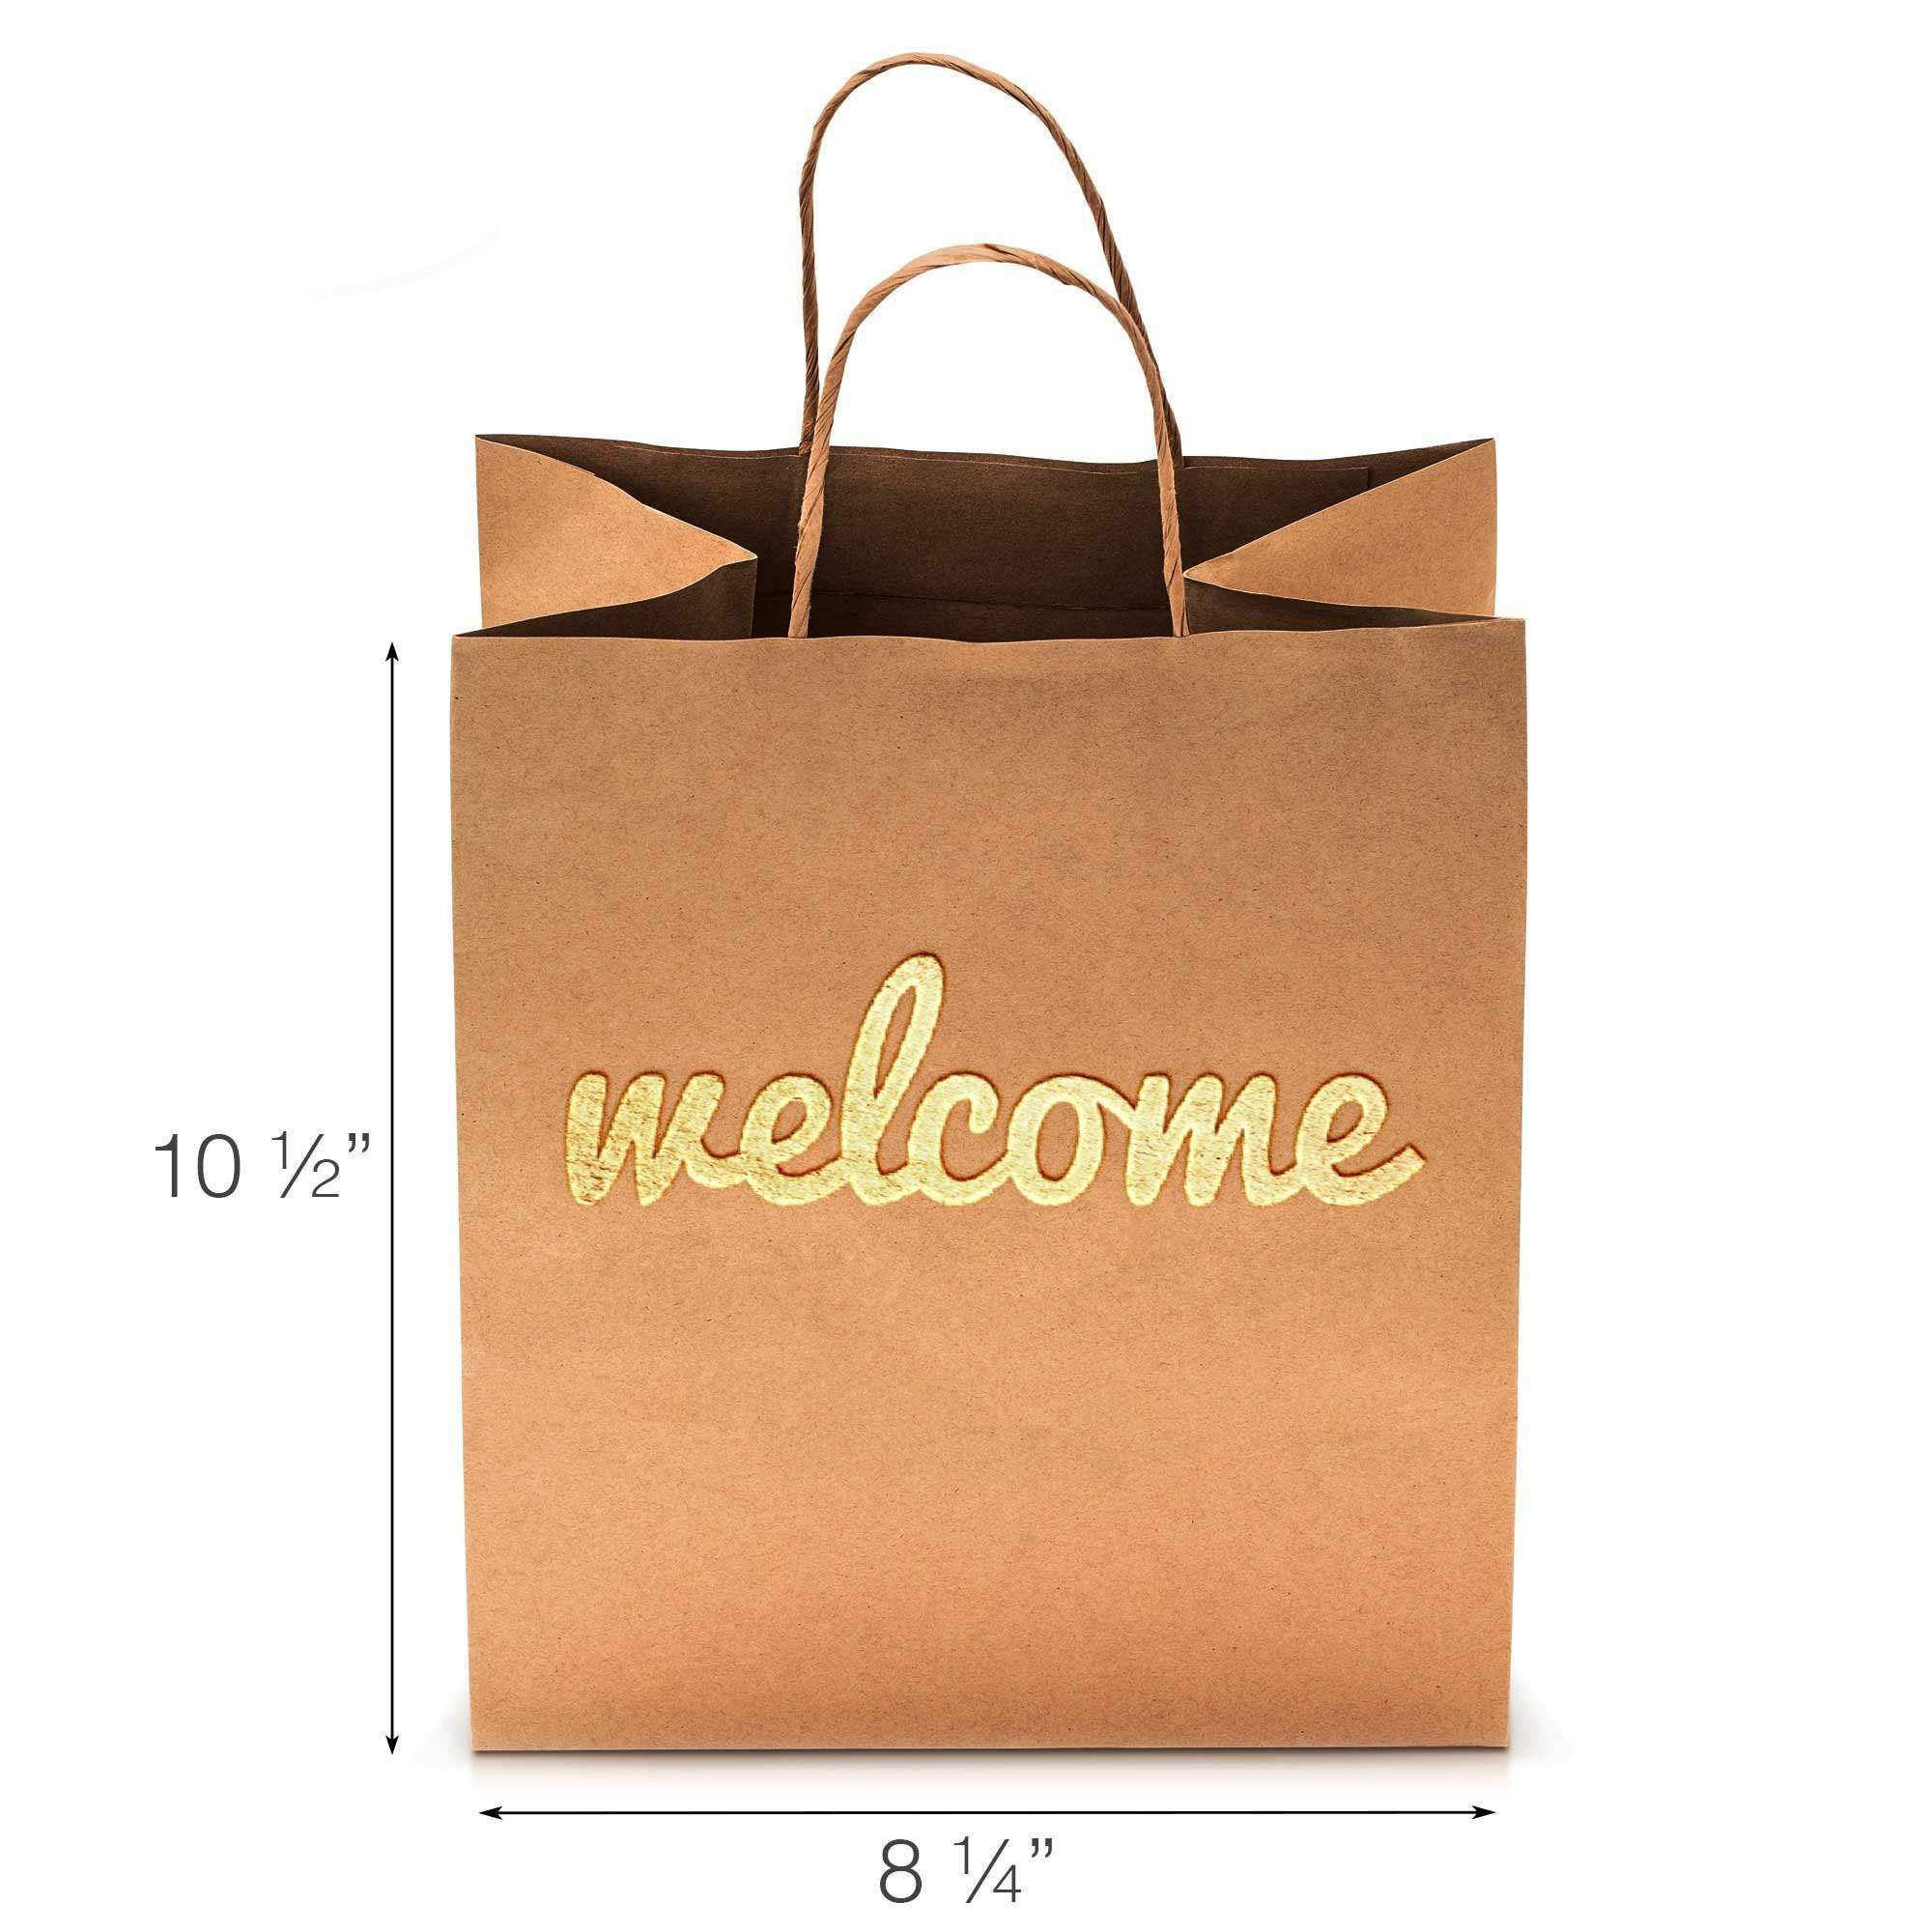 Welcome Gift Bags - Wedding Welcome Bag - Gold Foil Bridesmaid Gift Bag Pack / Set - Strong, Durable & Beautiful